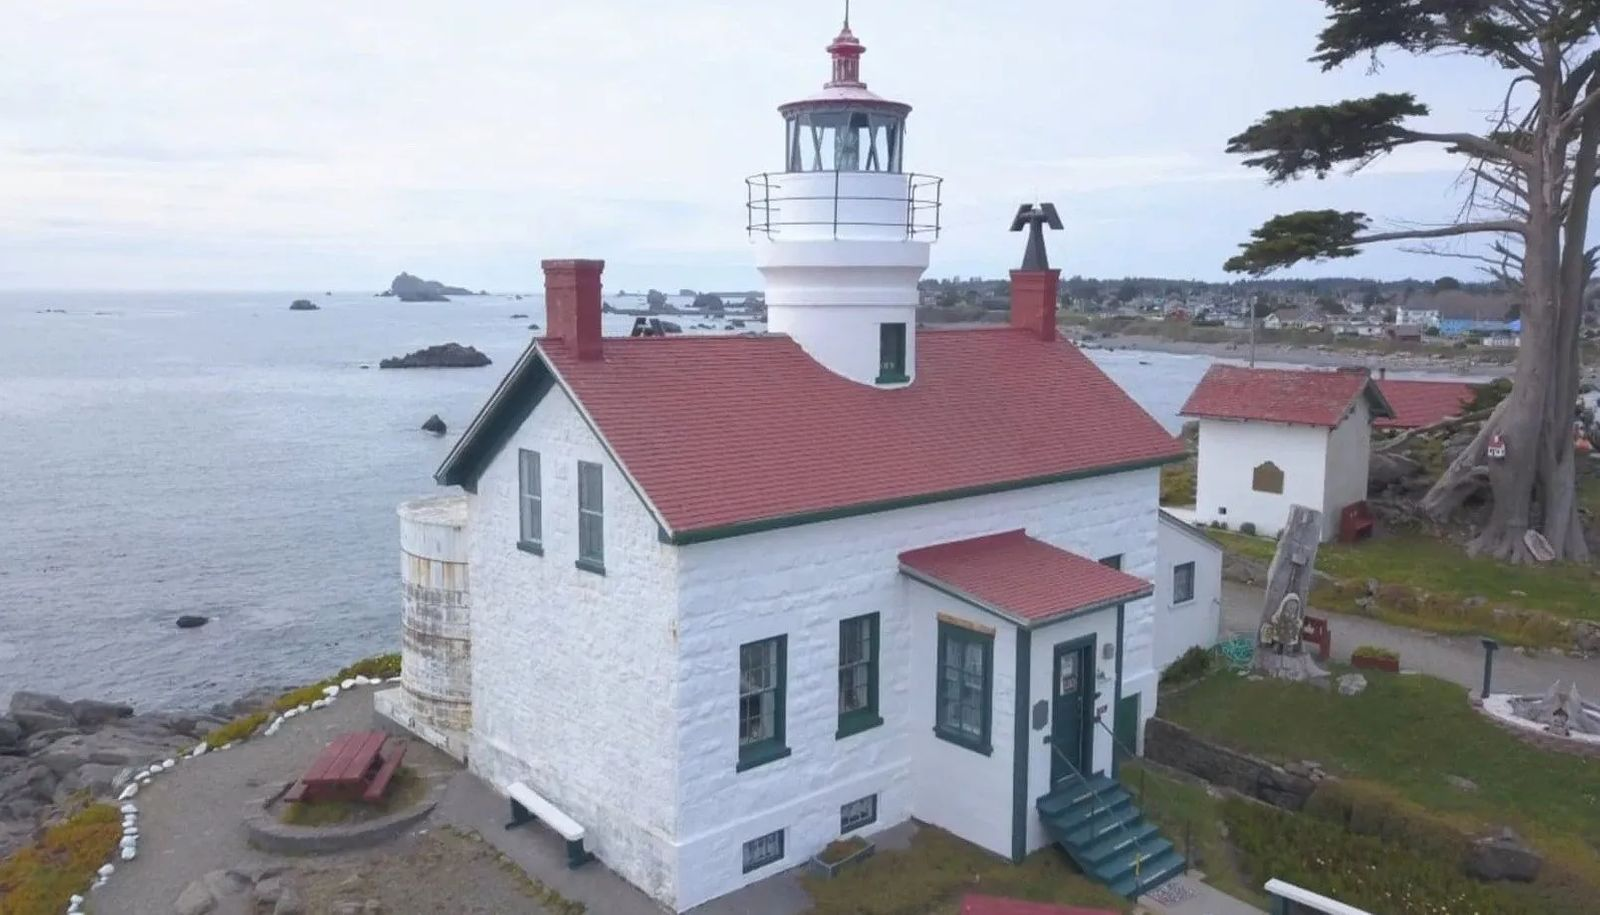 Things to do in Crescent City California